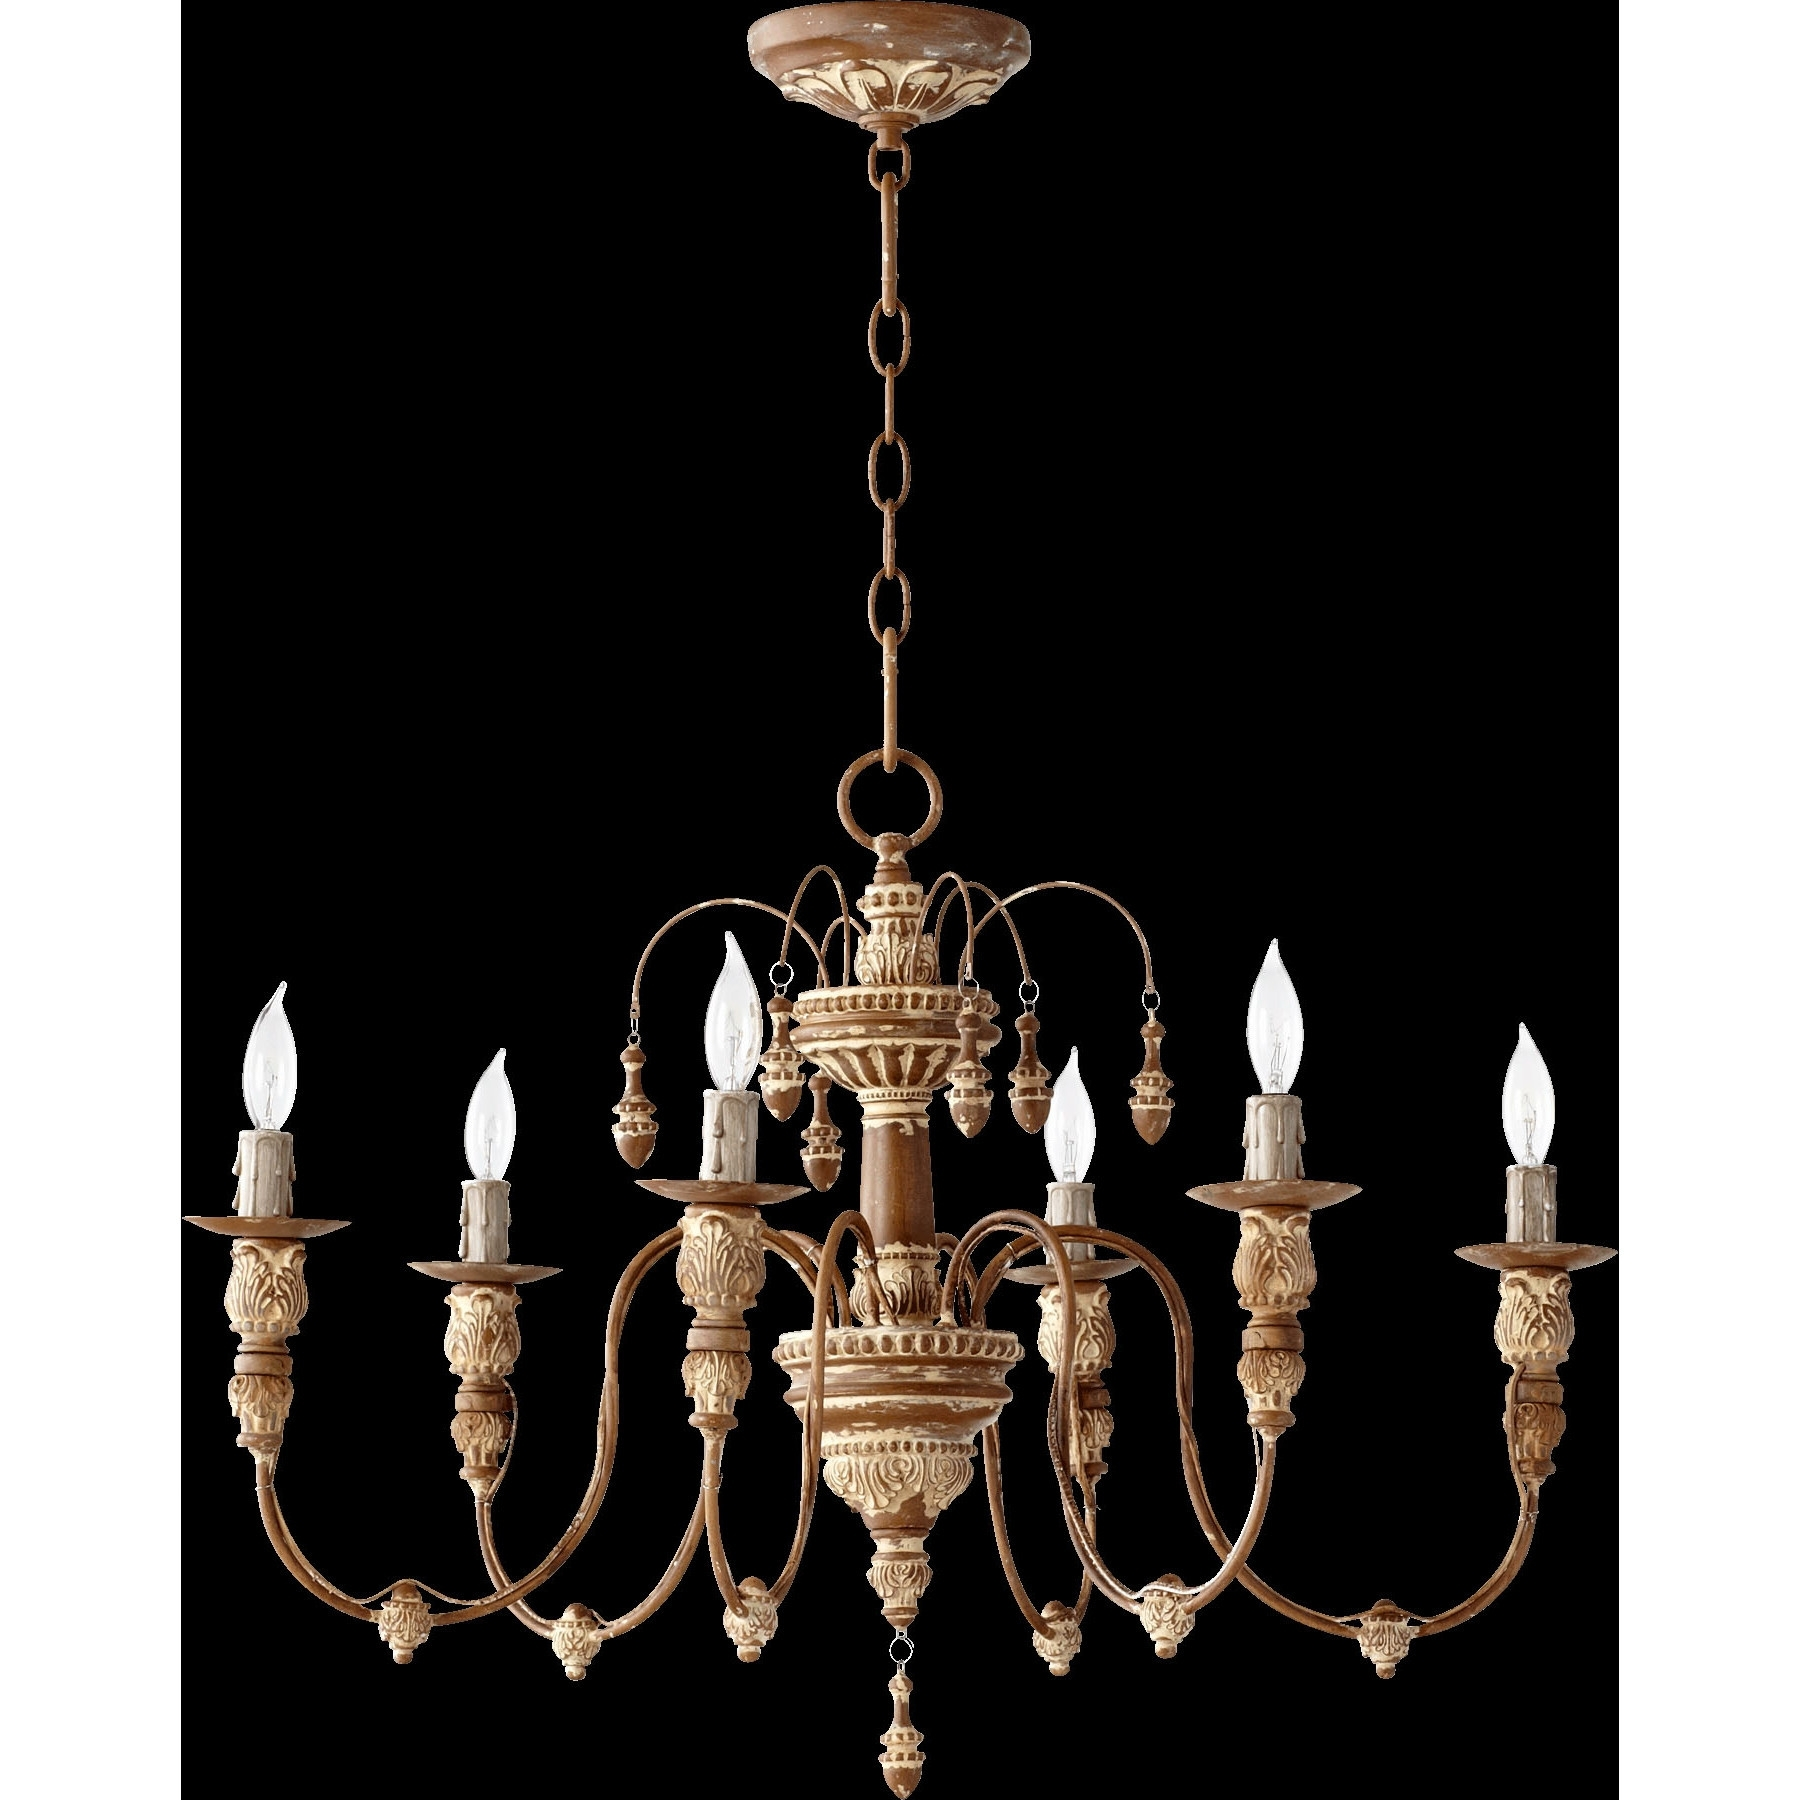 Wayfair Chandeliers Throughout Well Known Chandeliers : Wayfair Chandeliers Awesome Lighting Lamps Traditional (View 8 of 20)